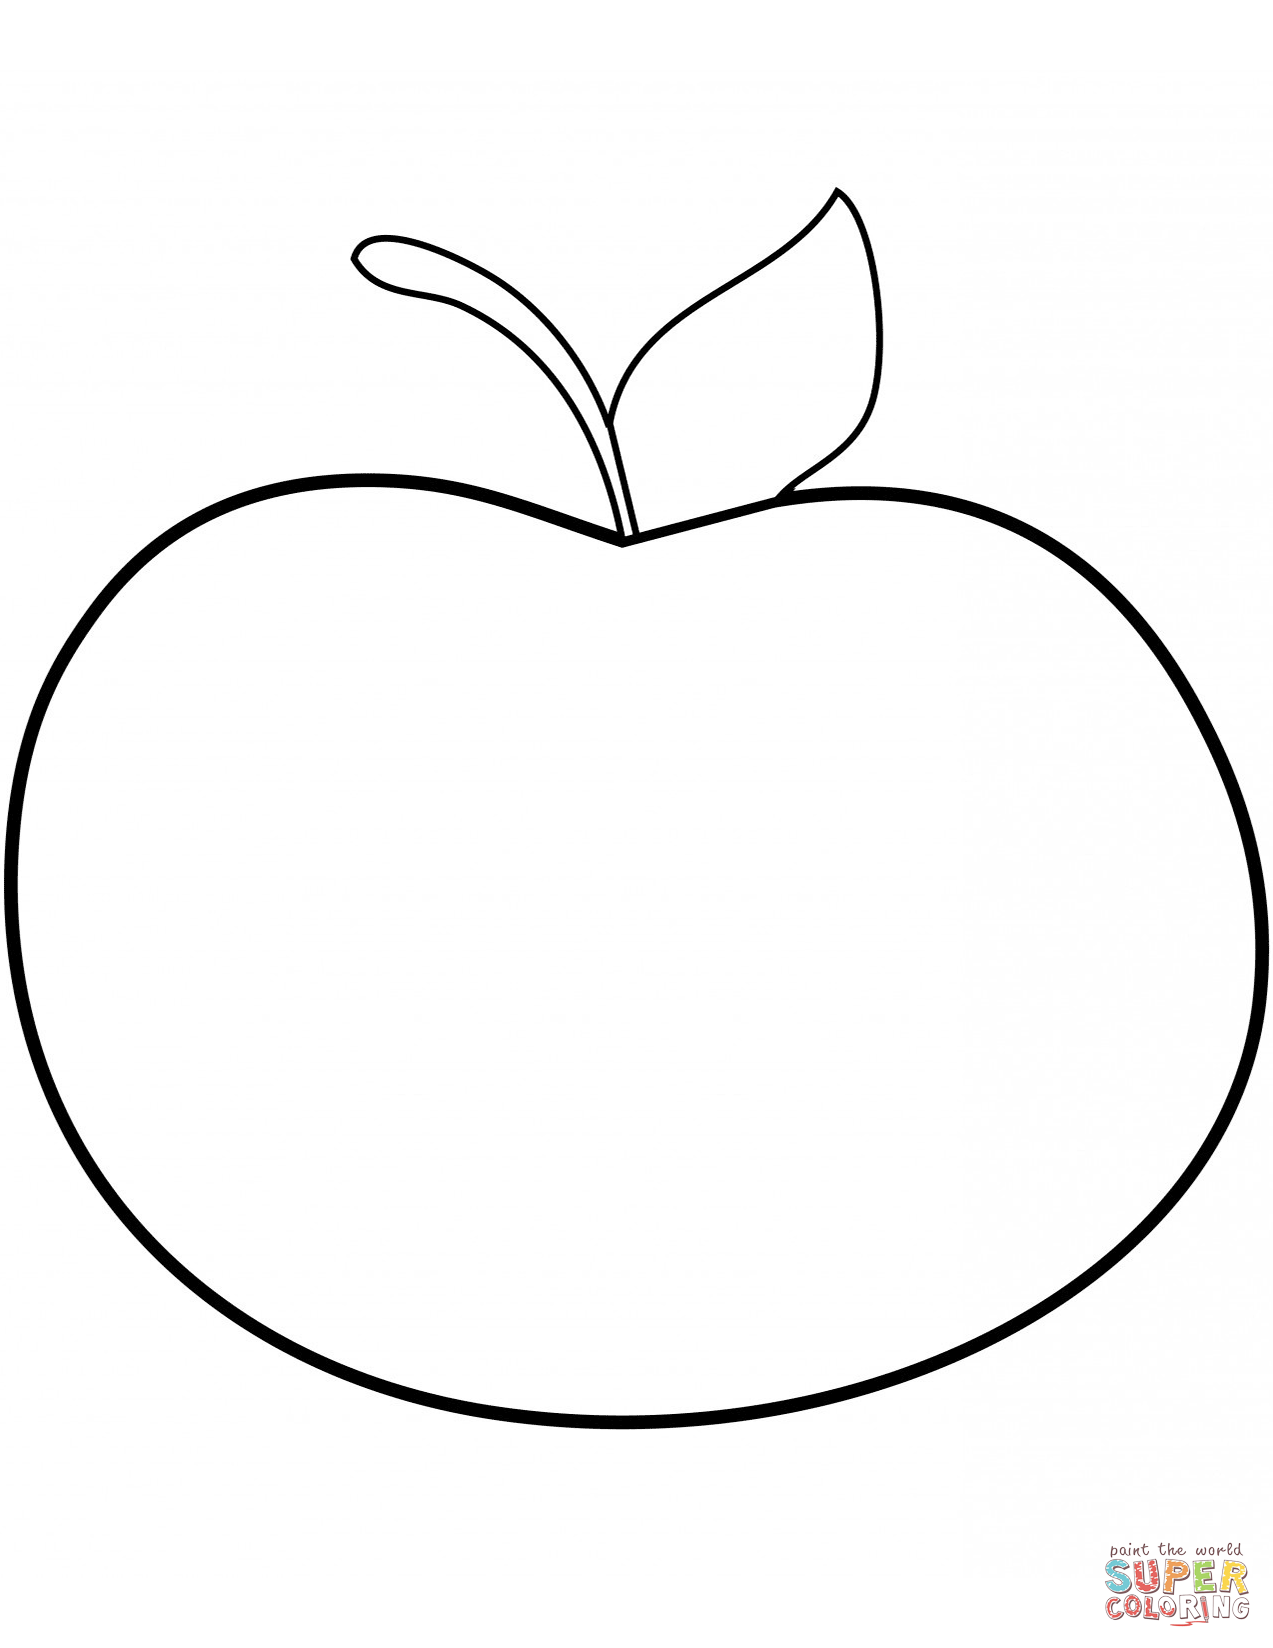 Simple Apple Pie Drawing Sketch Coloring Page